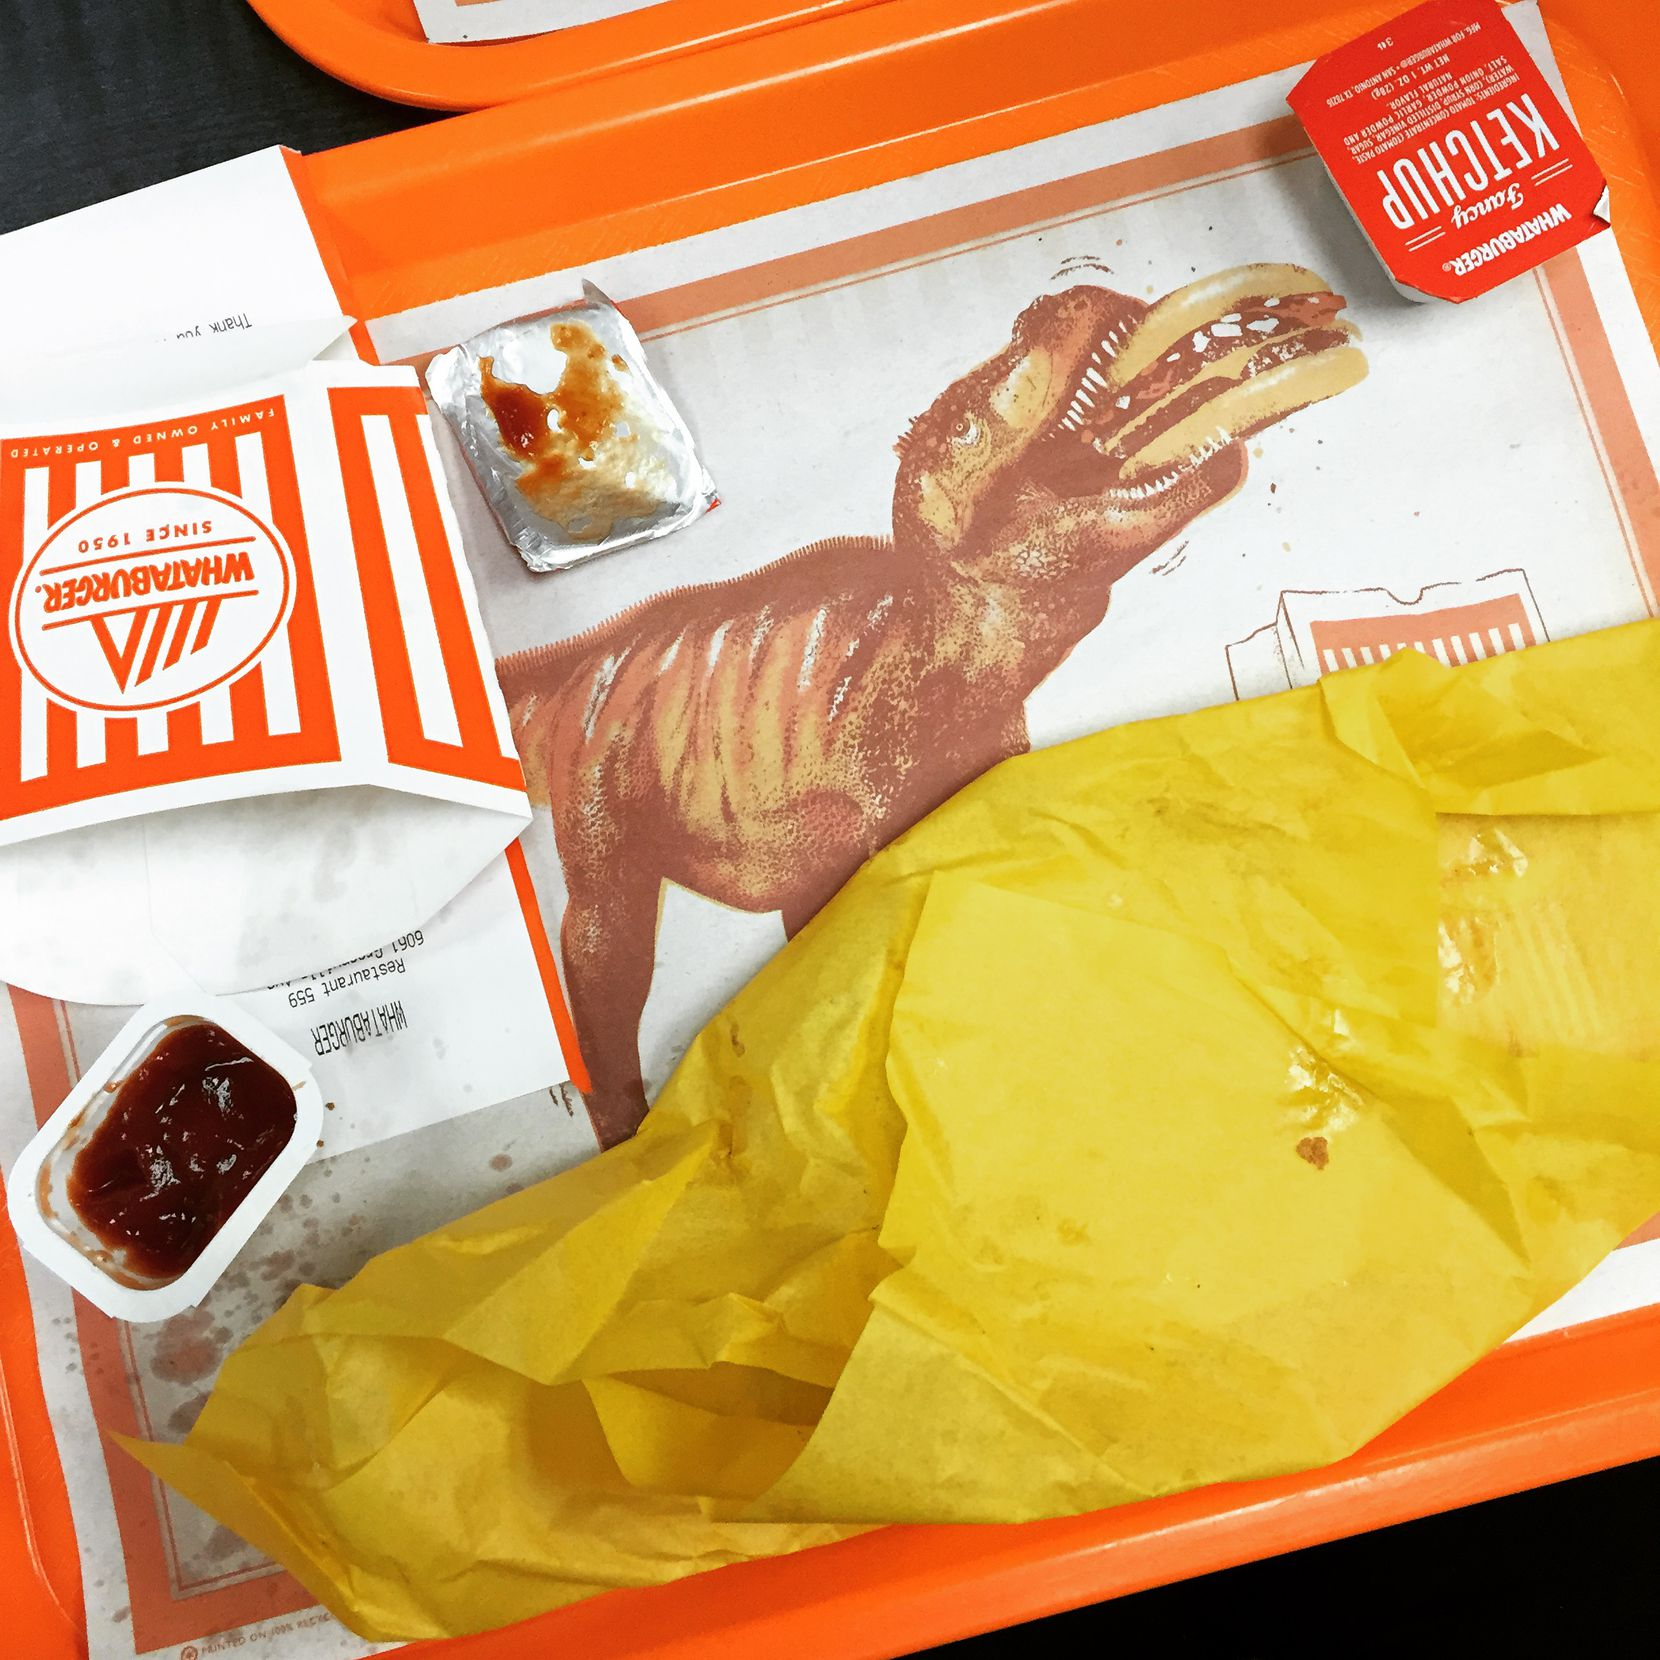 The remains of my first Whataburger. It was delicious.